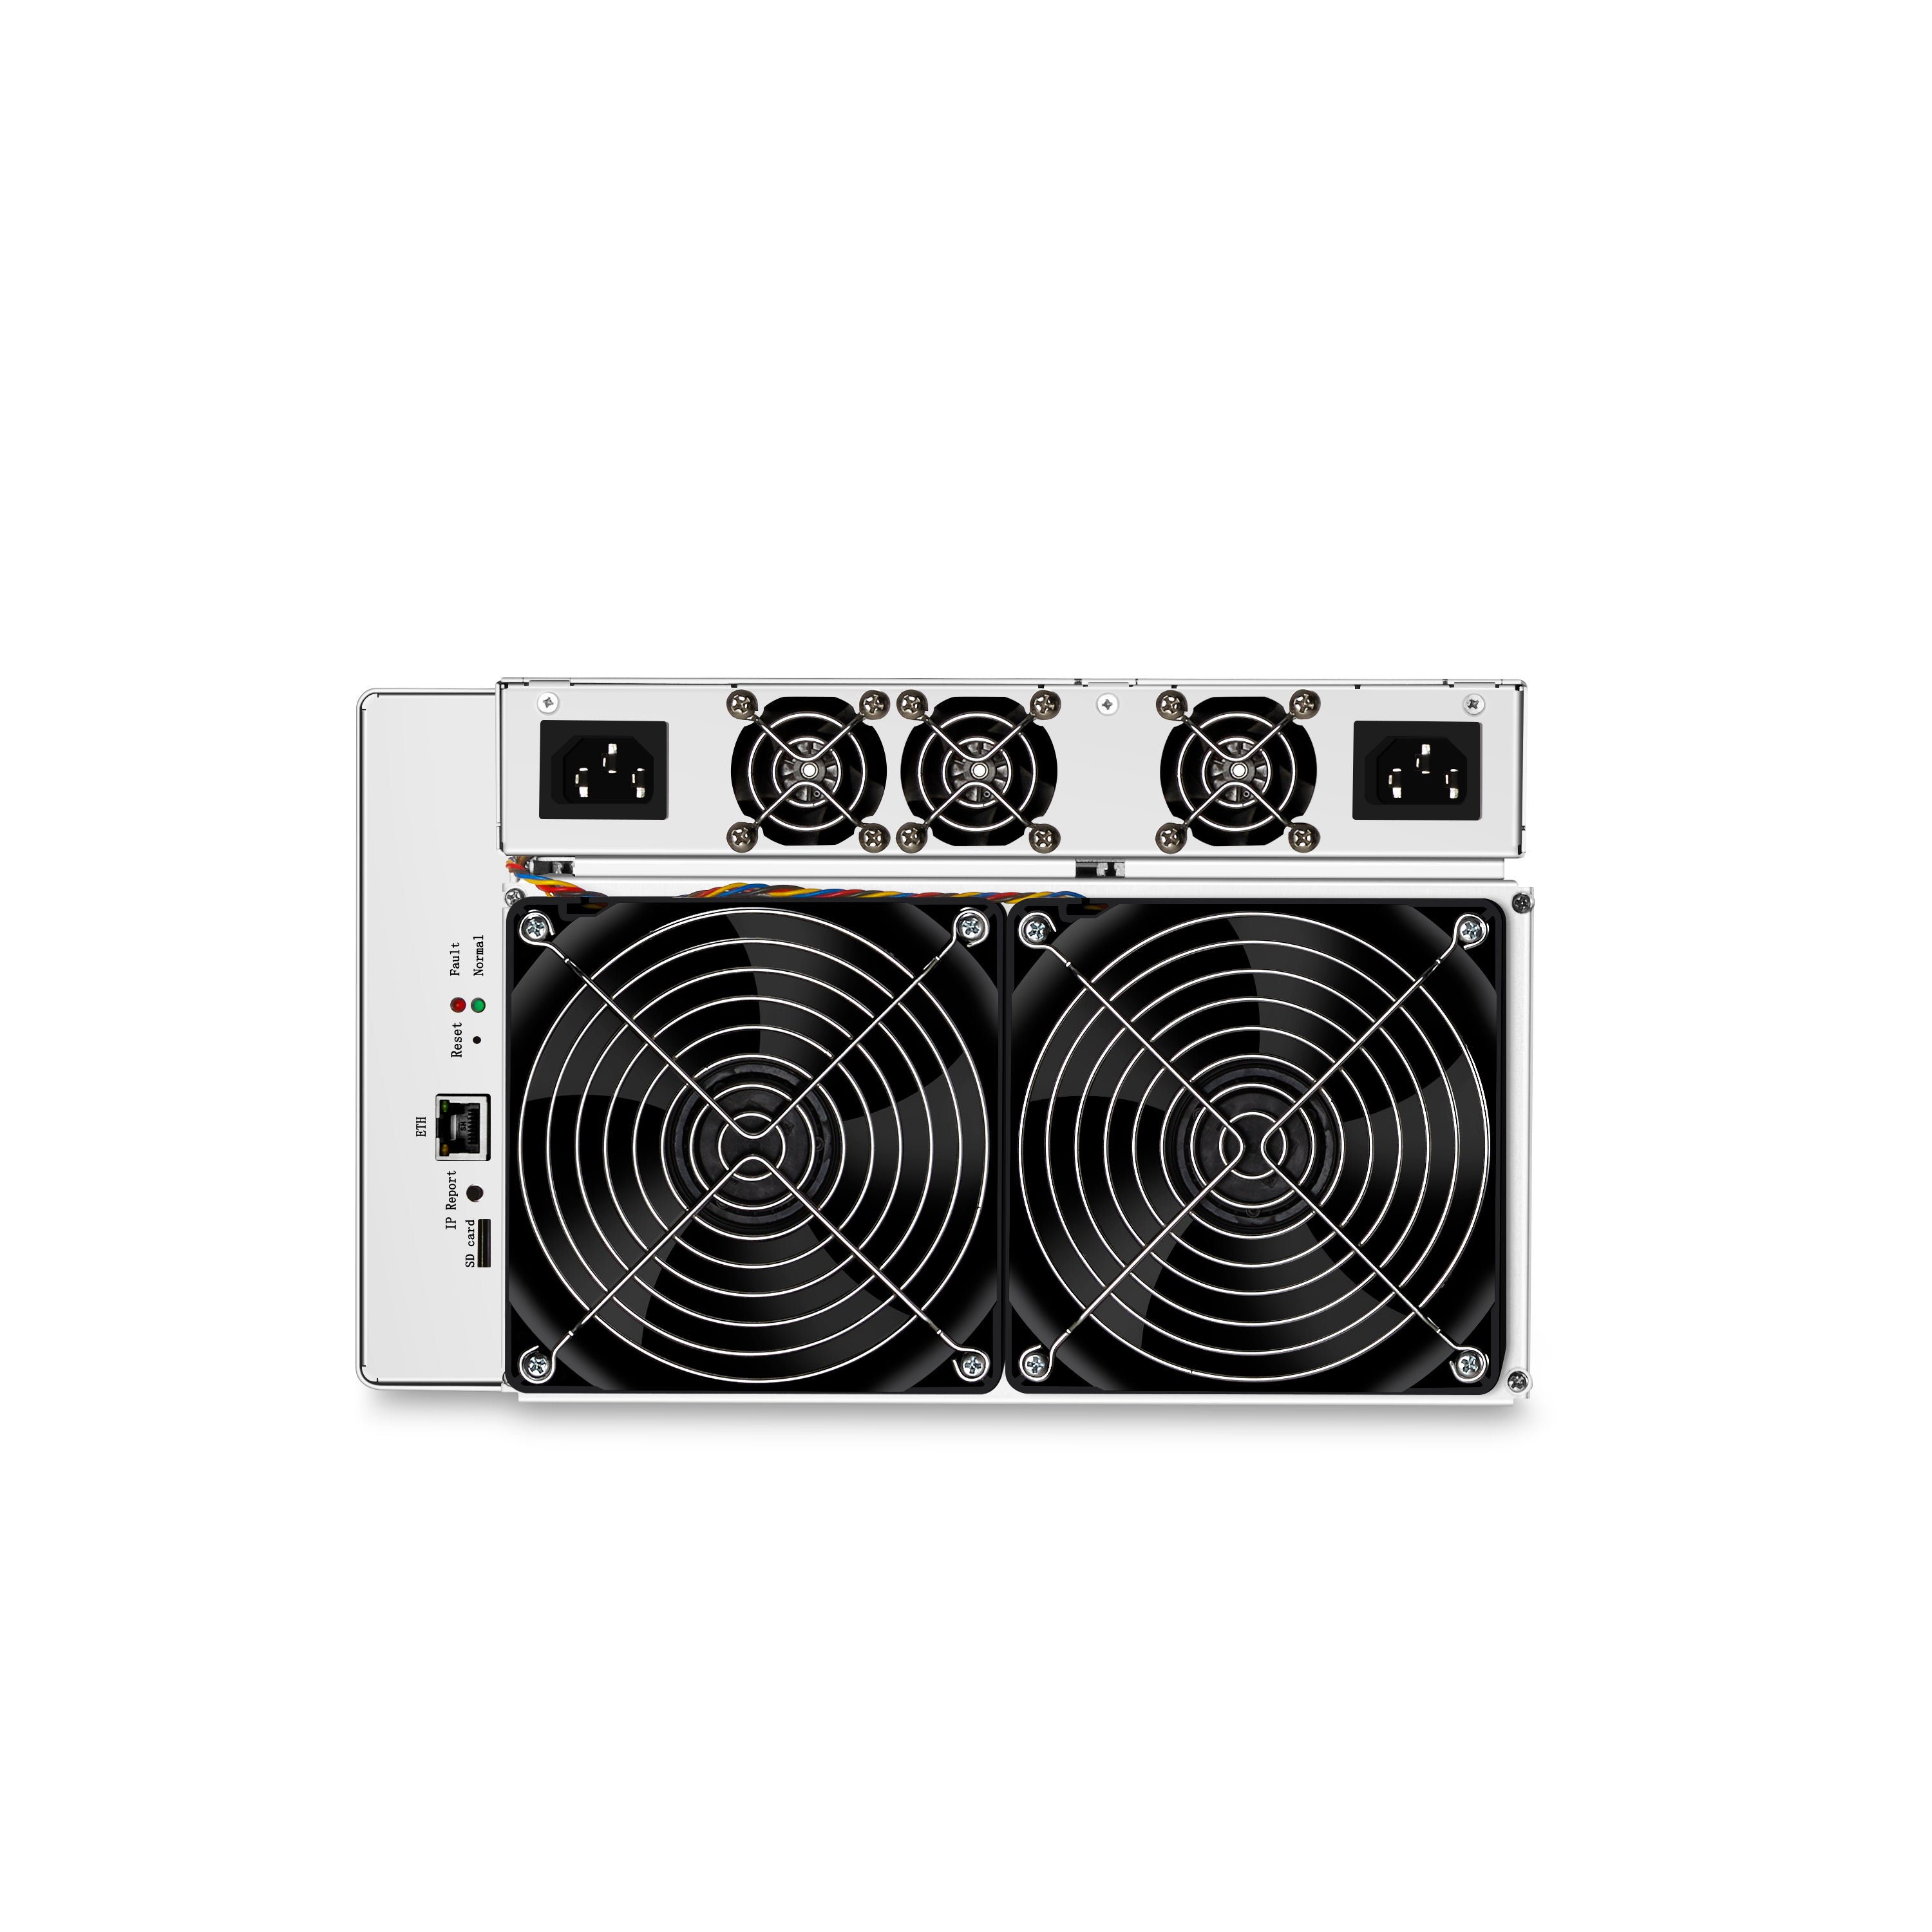 Bitmain Antminer S17+ 67TH/s - Buy Products with Cryptocurrency